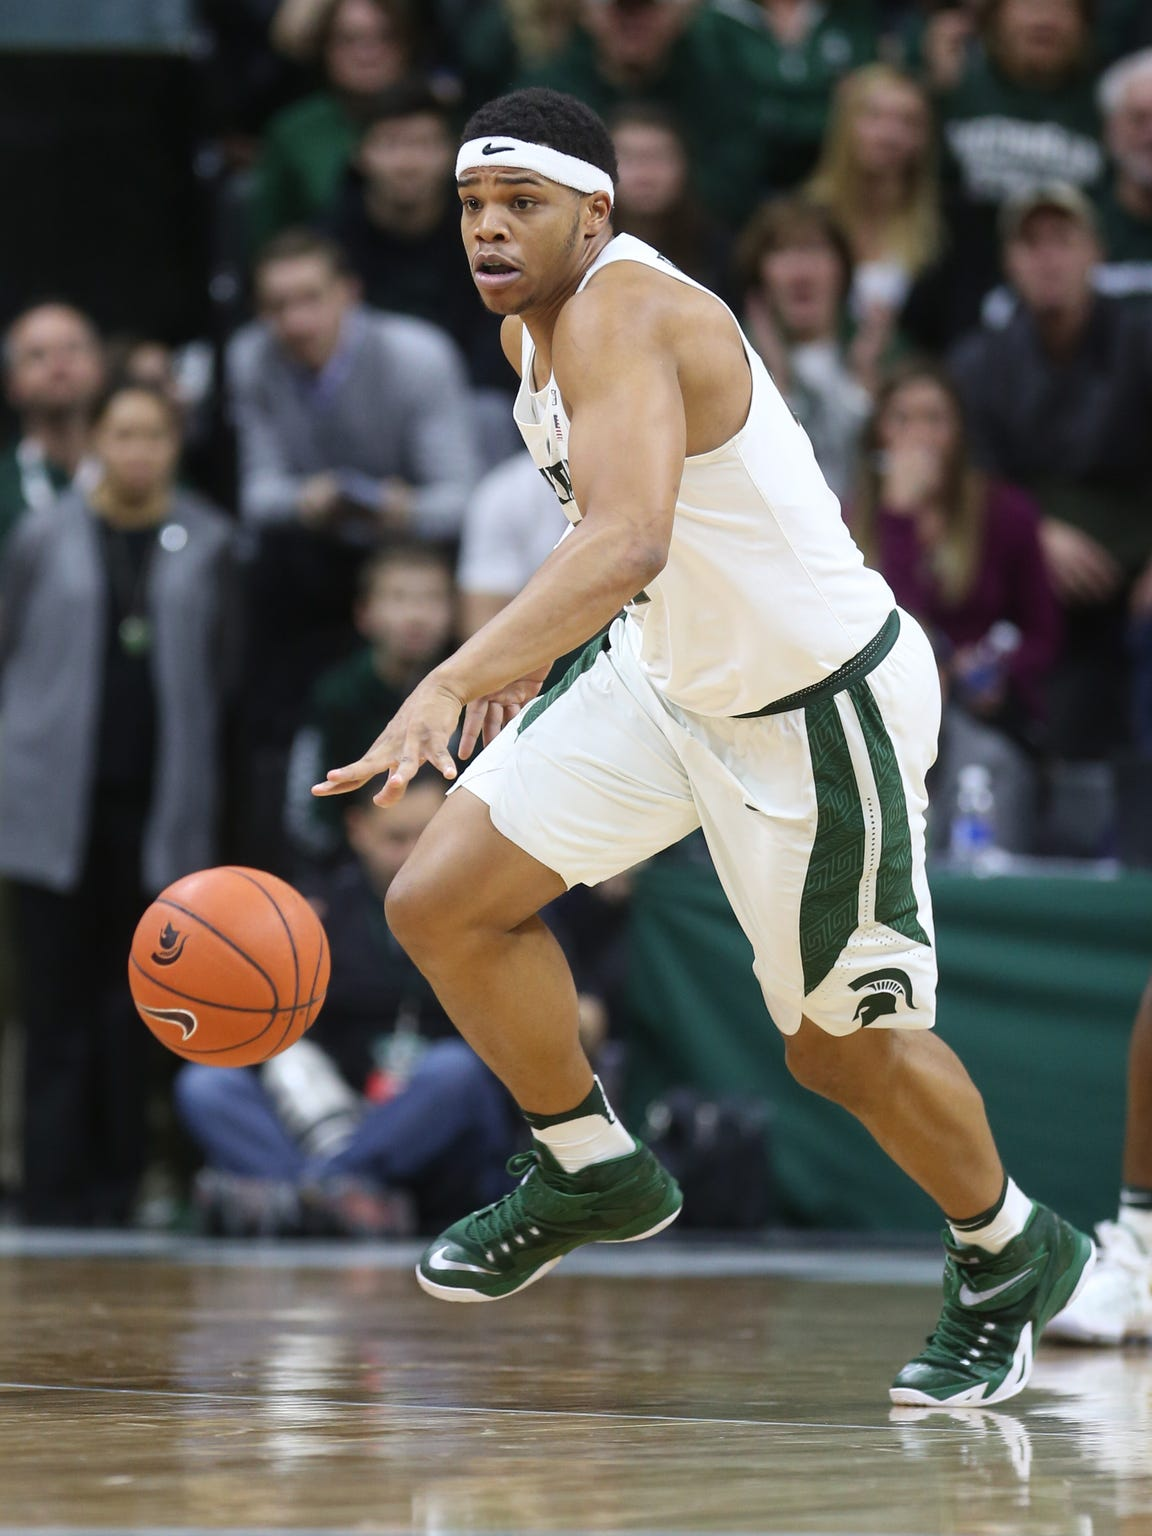 Michigan State Spartans forward Miles Bridges gets the loose ball during the second half against Rutgers on Wednesday, Jan. 4, 2017 at Breslin Center in East Lansing.